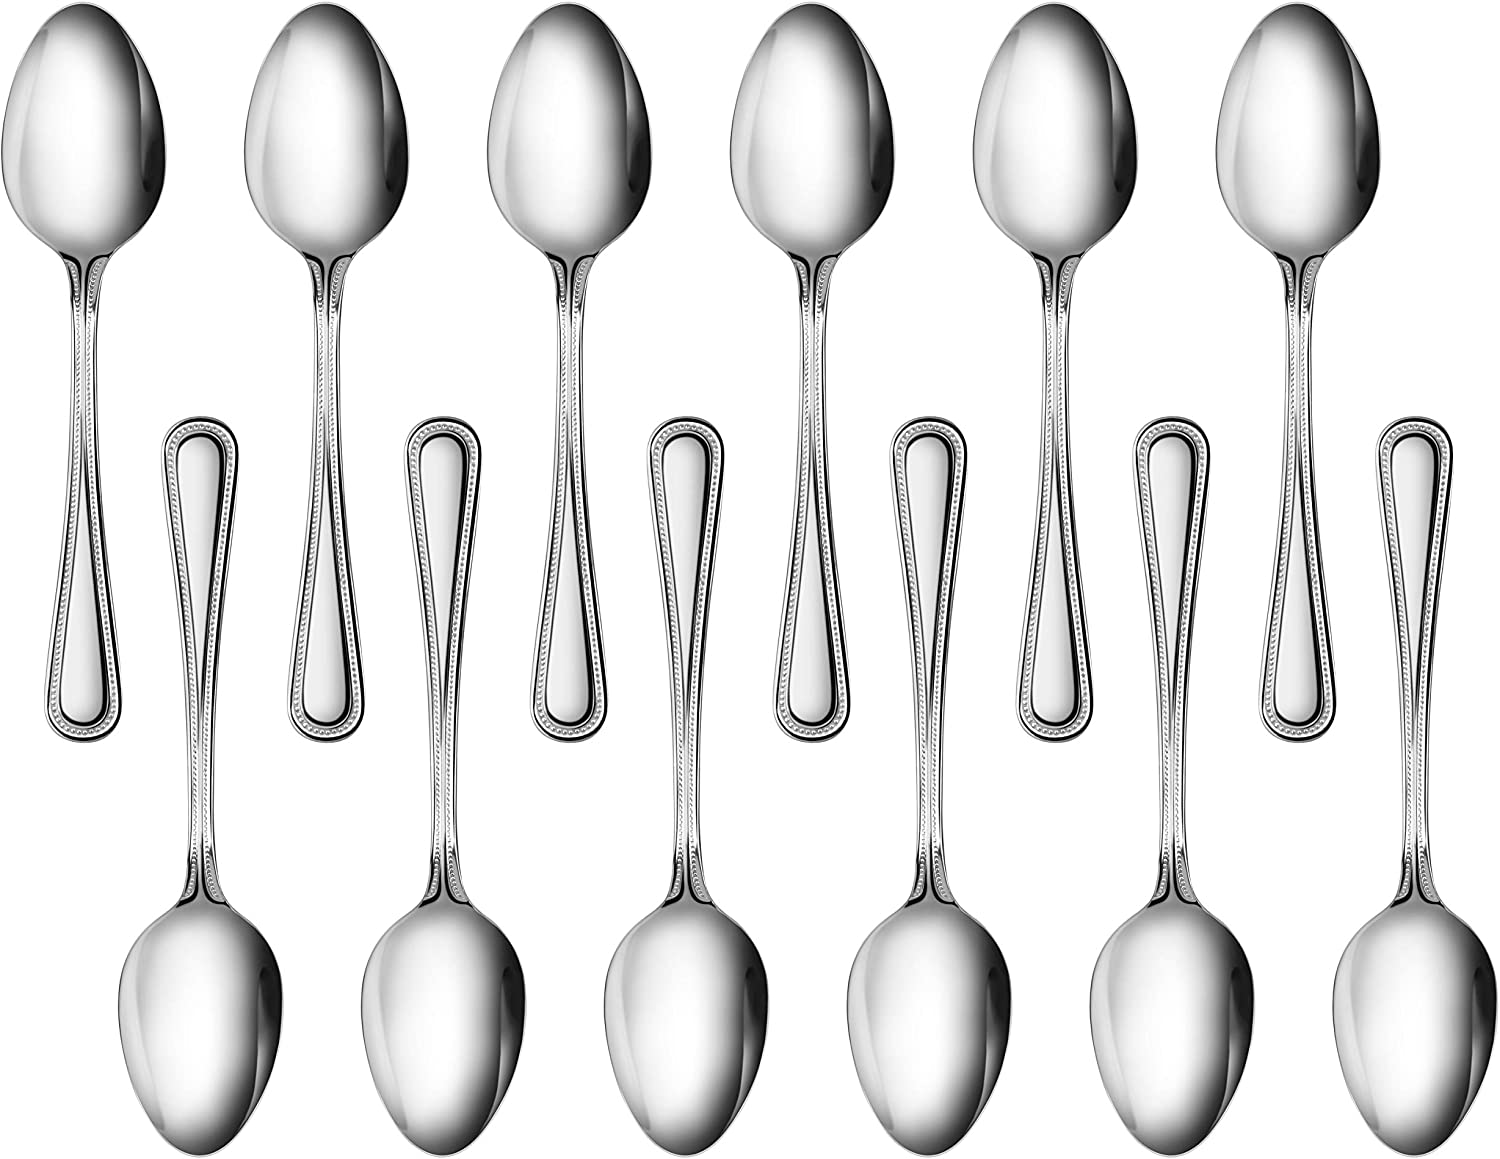 New Star Foodservice 58529 Bead Pattern, 18/0 Stainless Steel, Dinner Spoon, 7.6-Inch, Set of 12